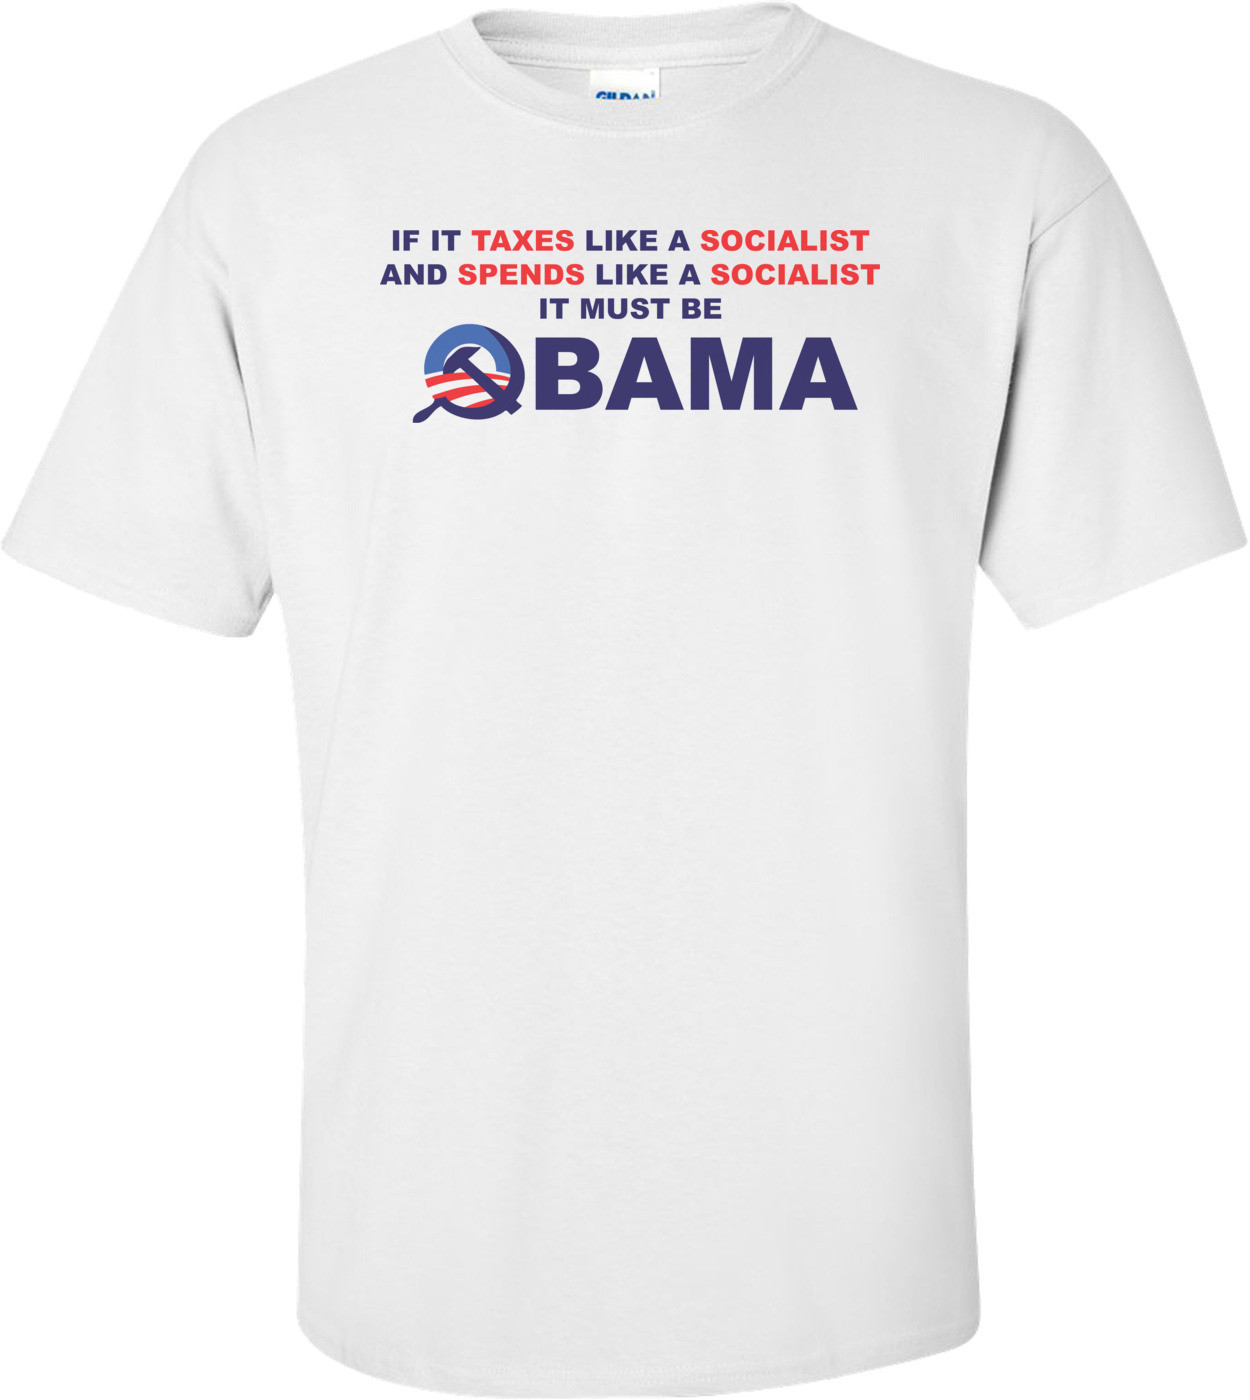 If It Taxes Like A Socialist And Spends Like A Socialist It Must Be Obama Anti-obama-t-shirt